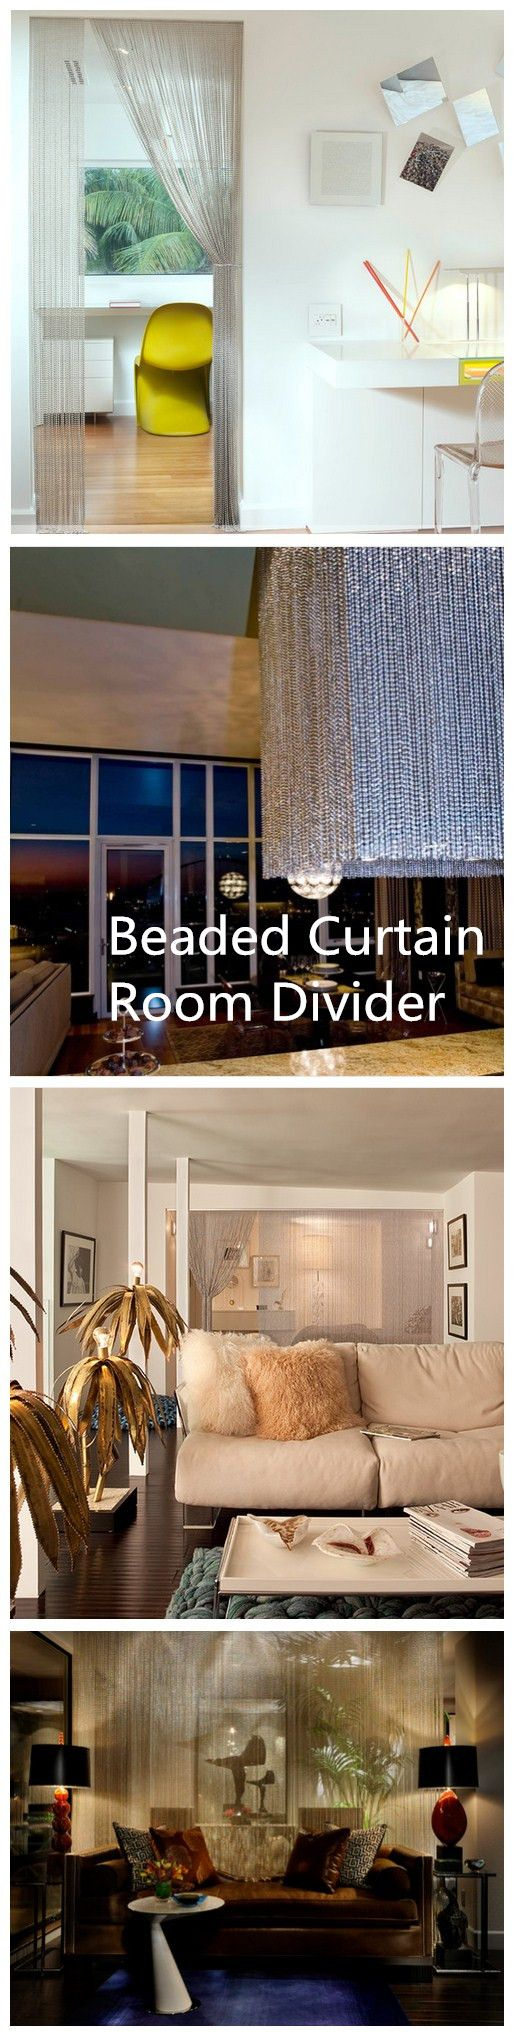 Bead curtain room divider - Beaded Curtain Room Divider In Interior Decoration Beaded Chain Door Screen Beaded Chain Chandelier